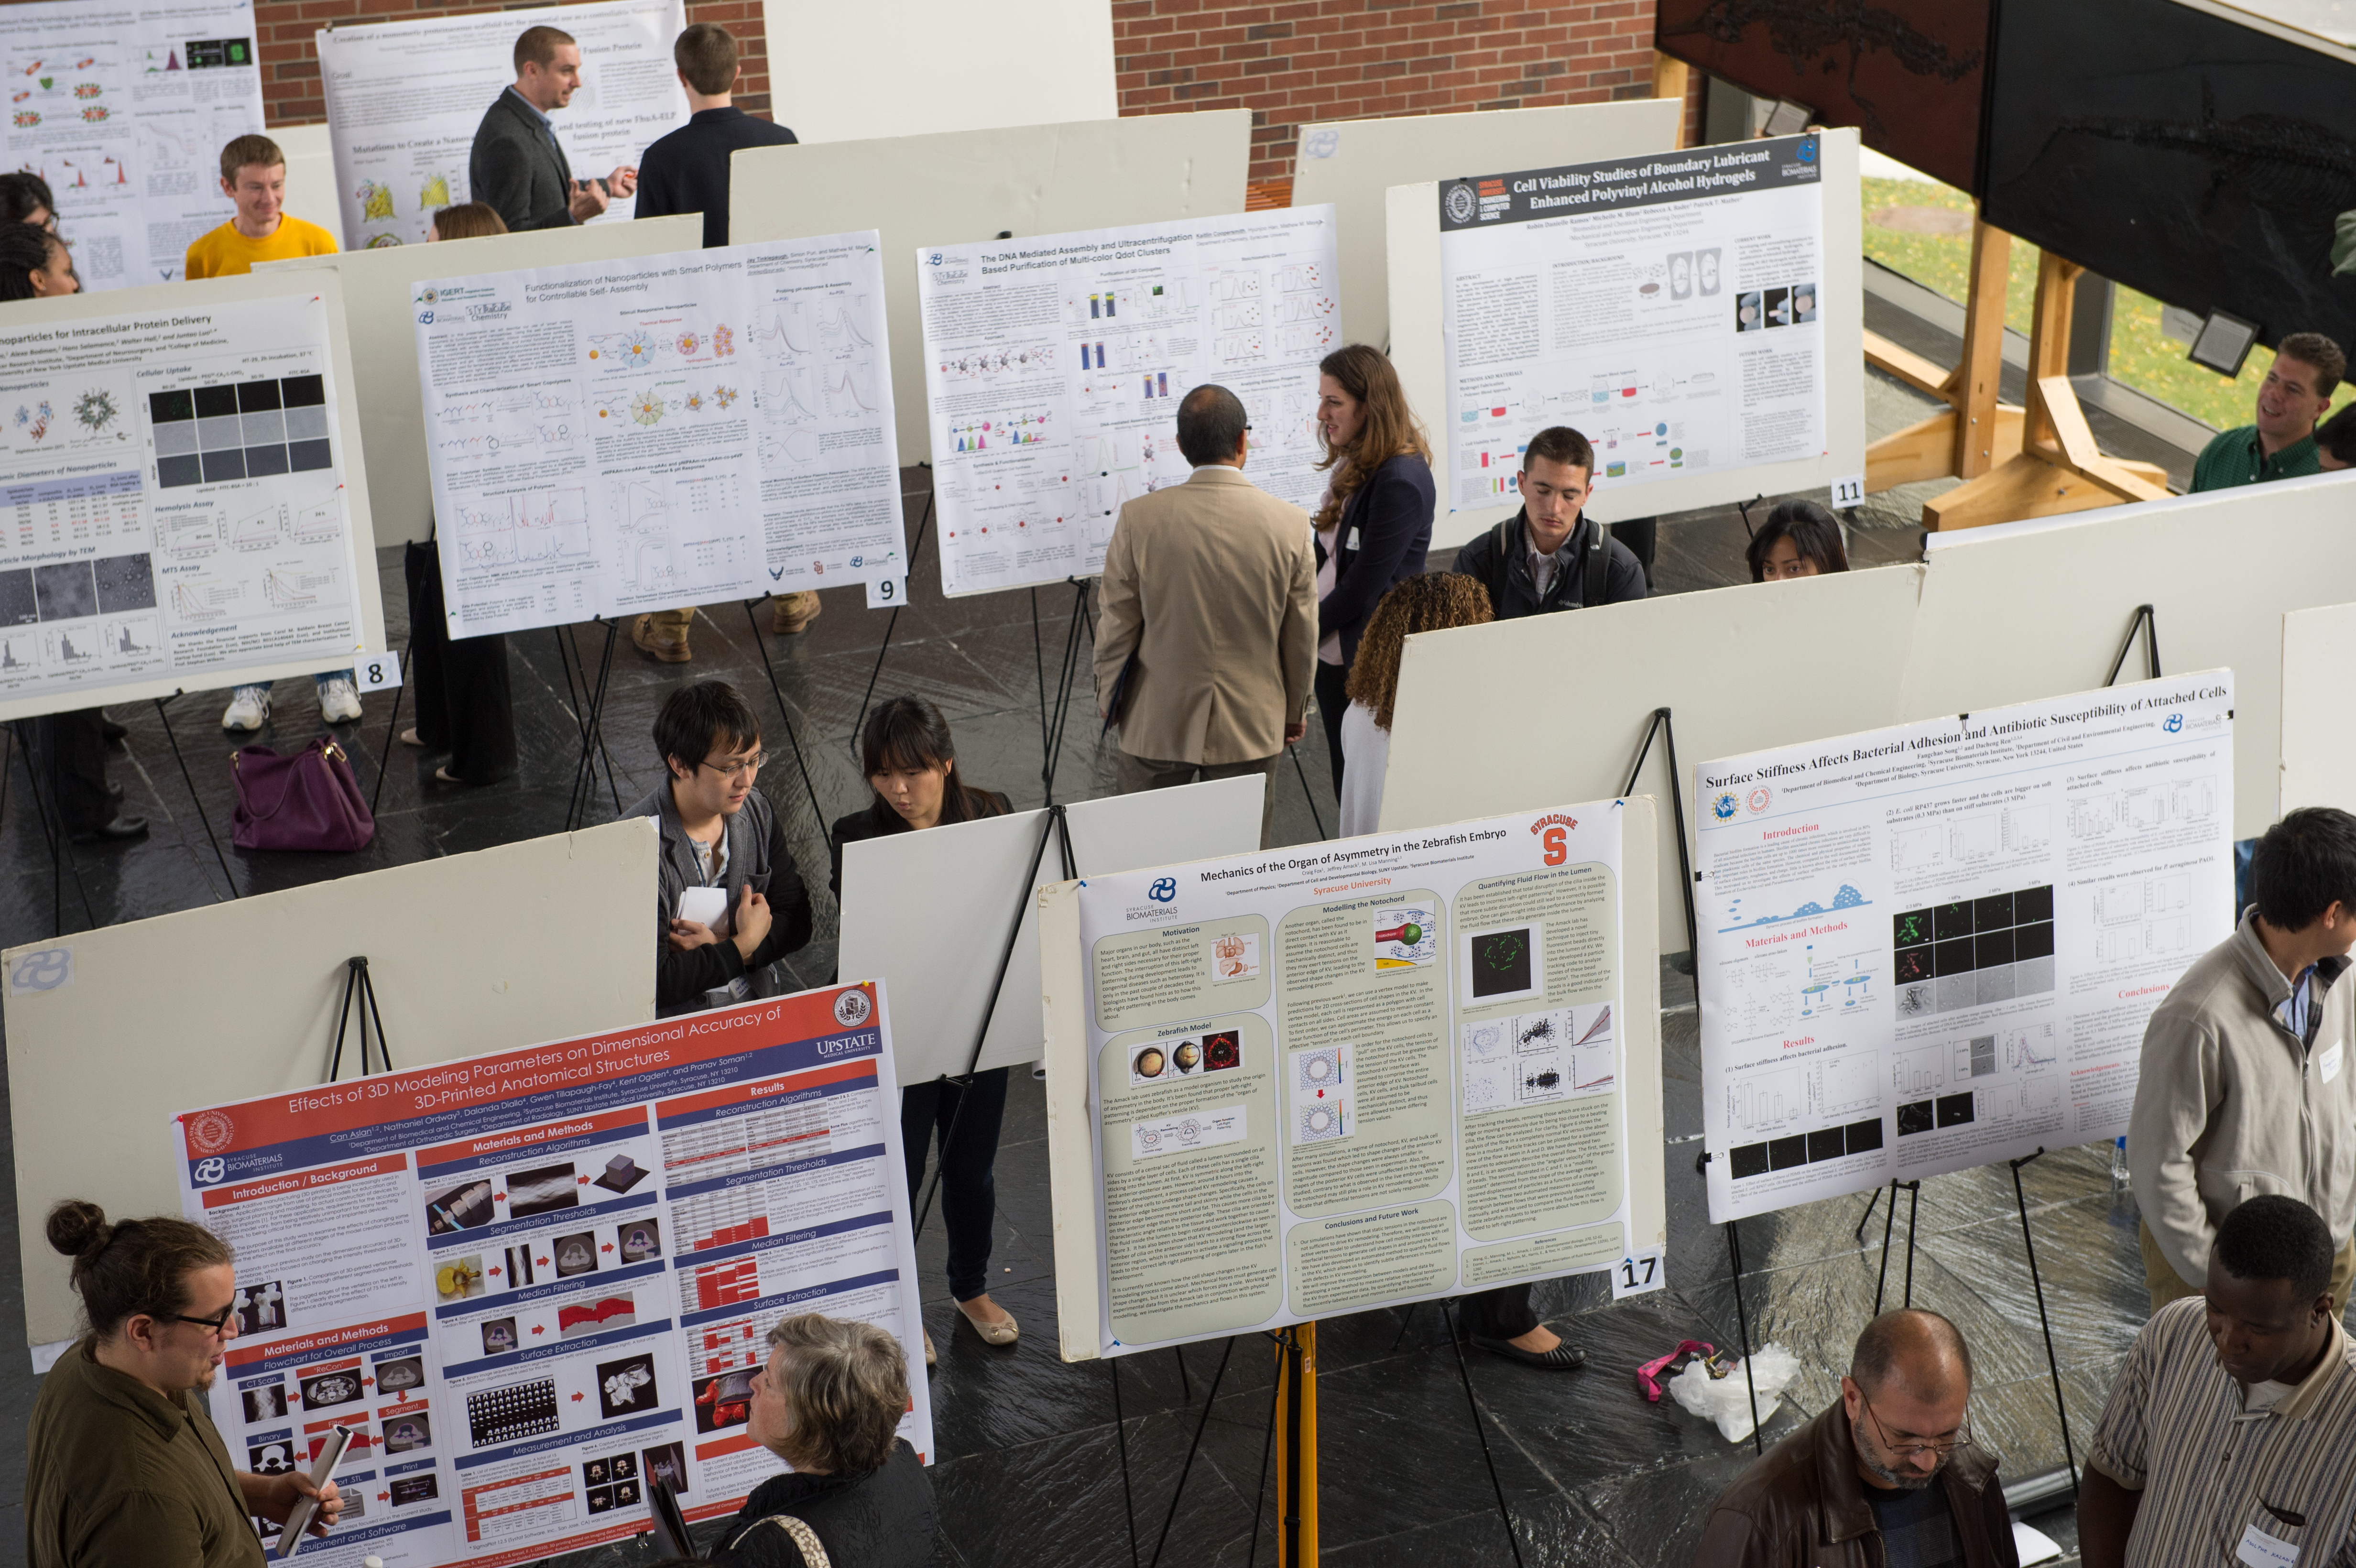 Stevenson Biomaterials Lecture Series Research Poster Session 2014 Engineering Science Students Graduate Students